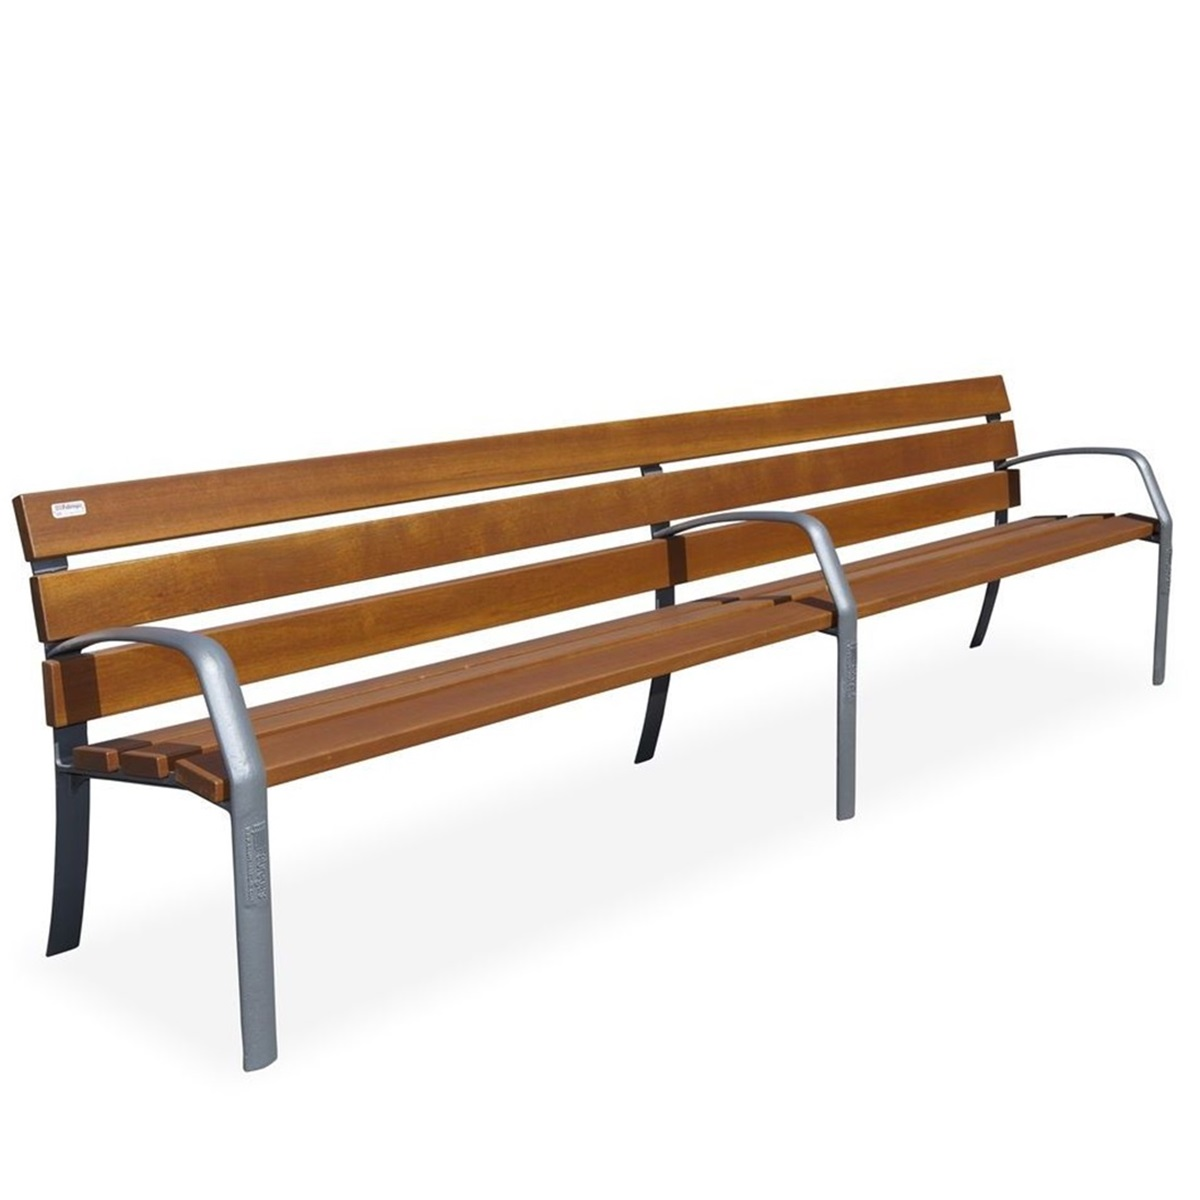 Similar Bench C-1016-3M zoomed